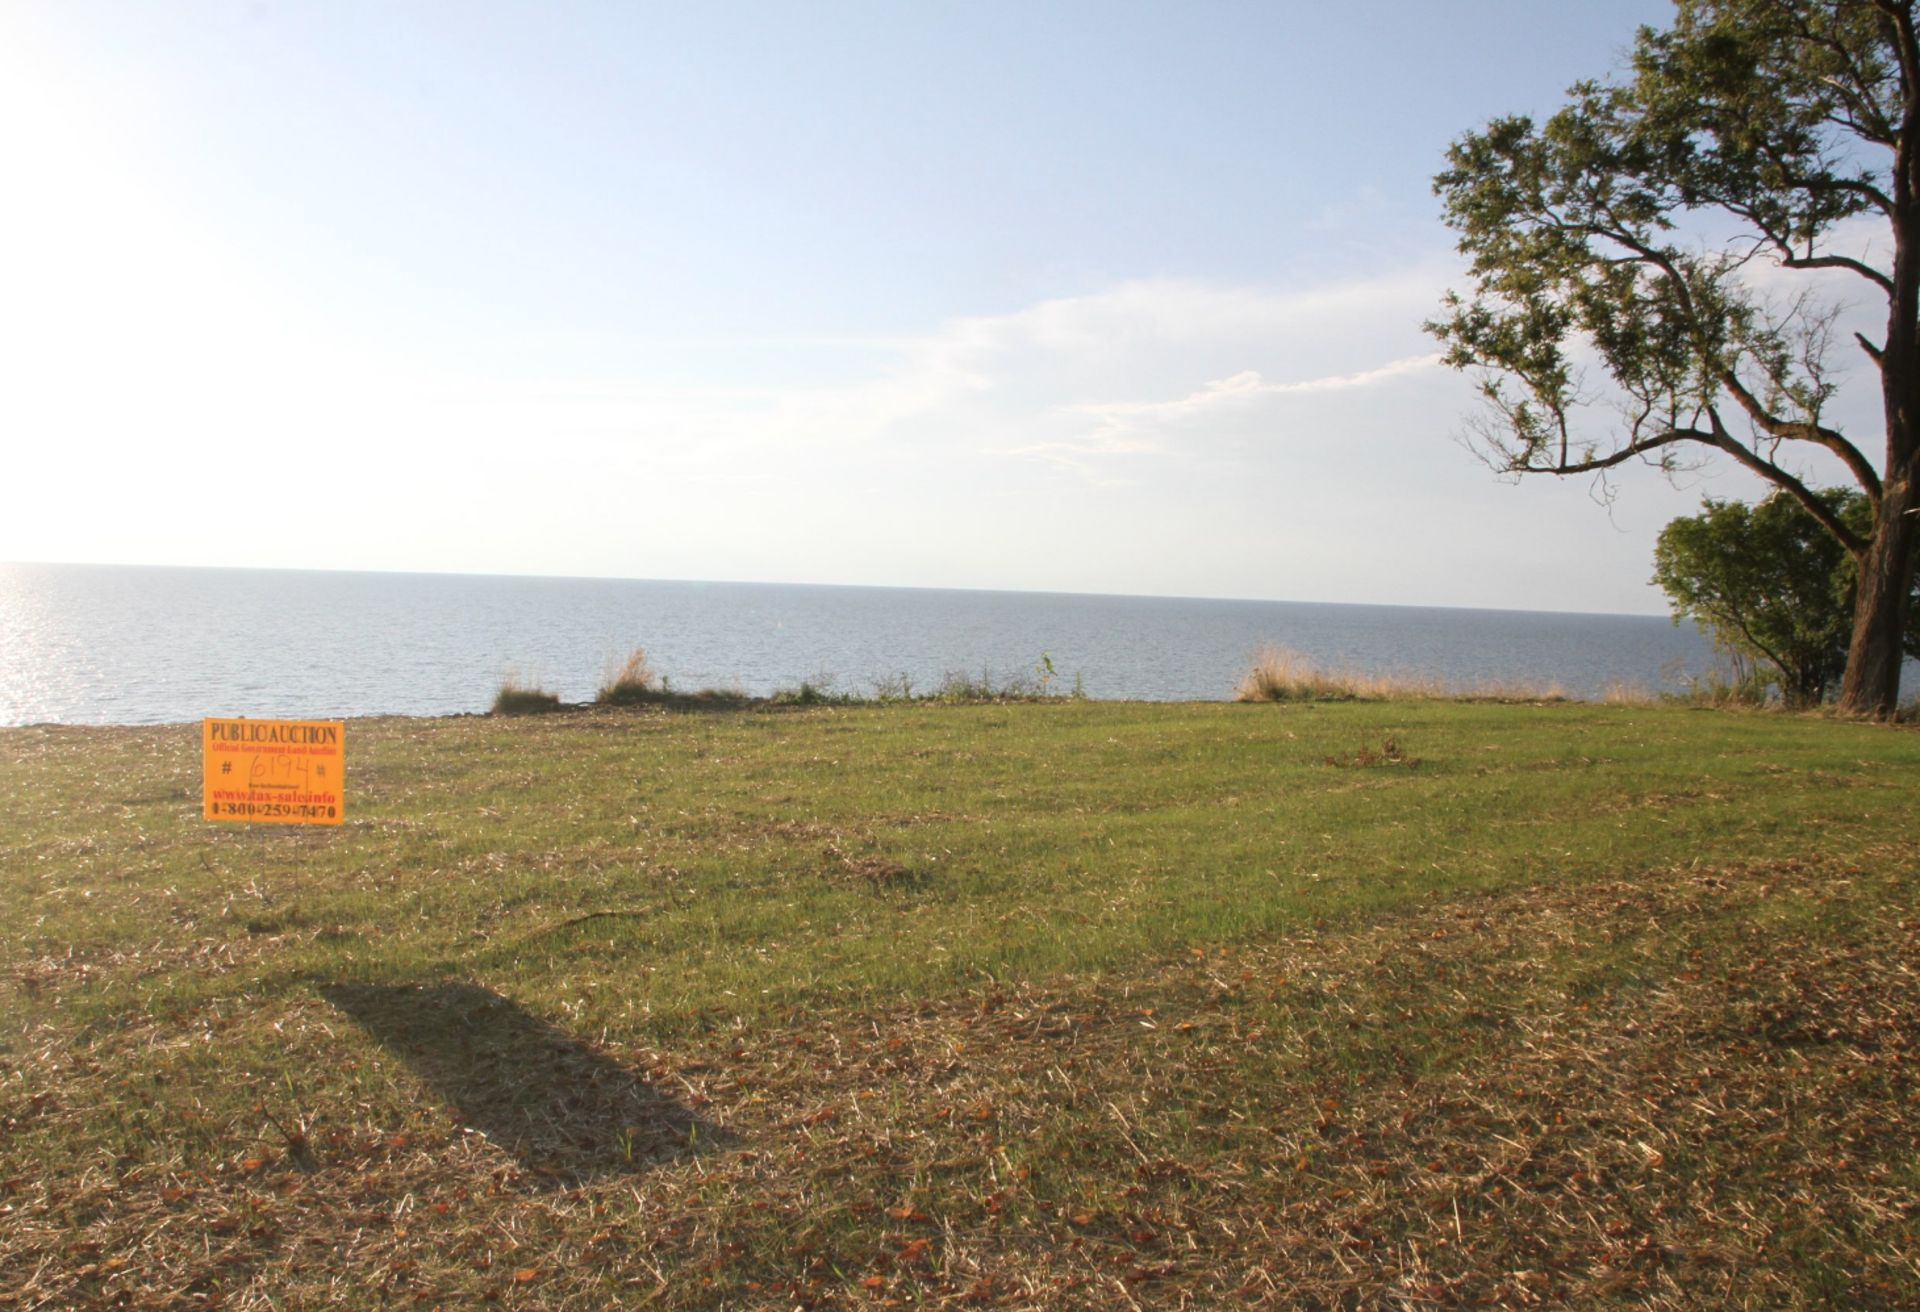 Showstopper on Lake Michigan's Coastline at Manistee! Beautiful property! Magnificent view! - Image 7 of 9